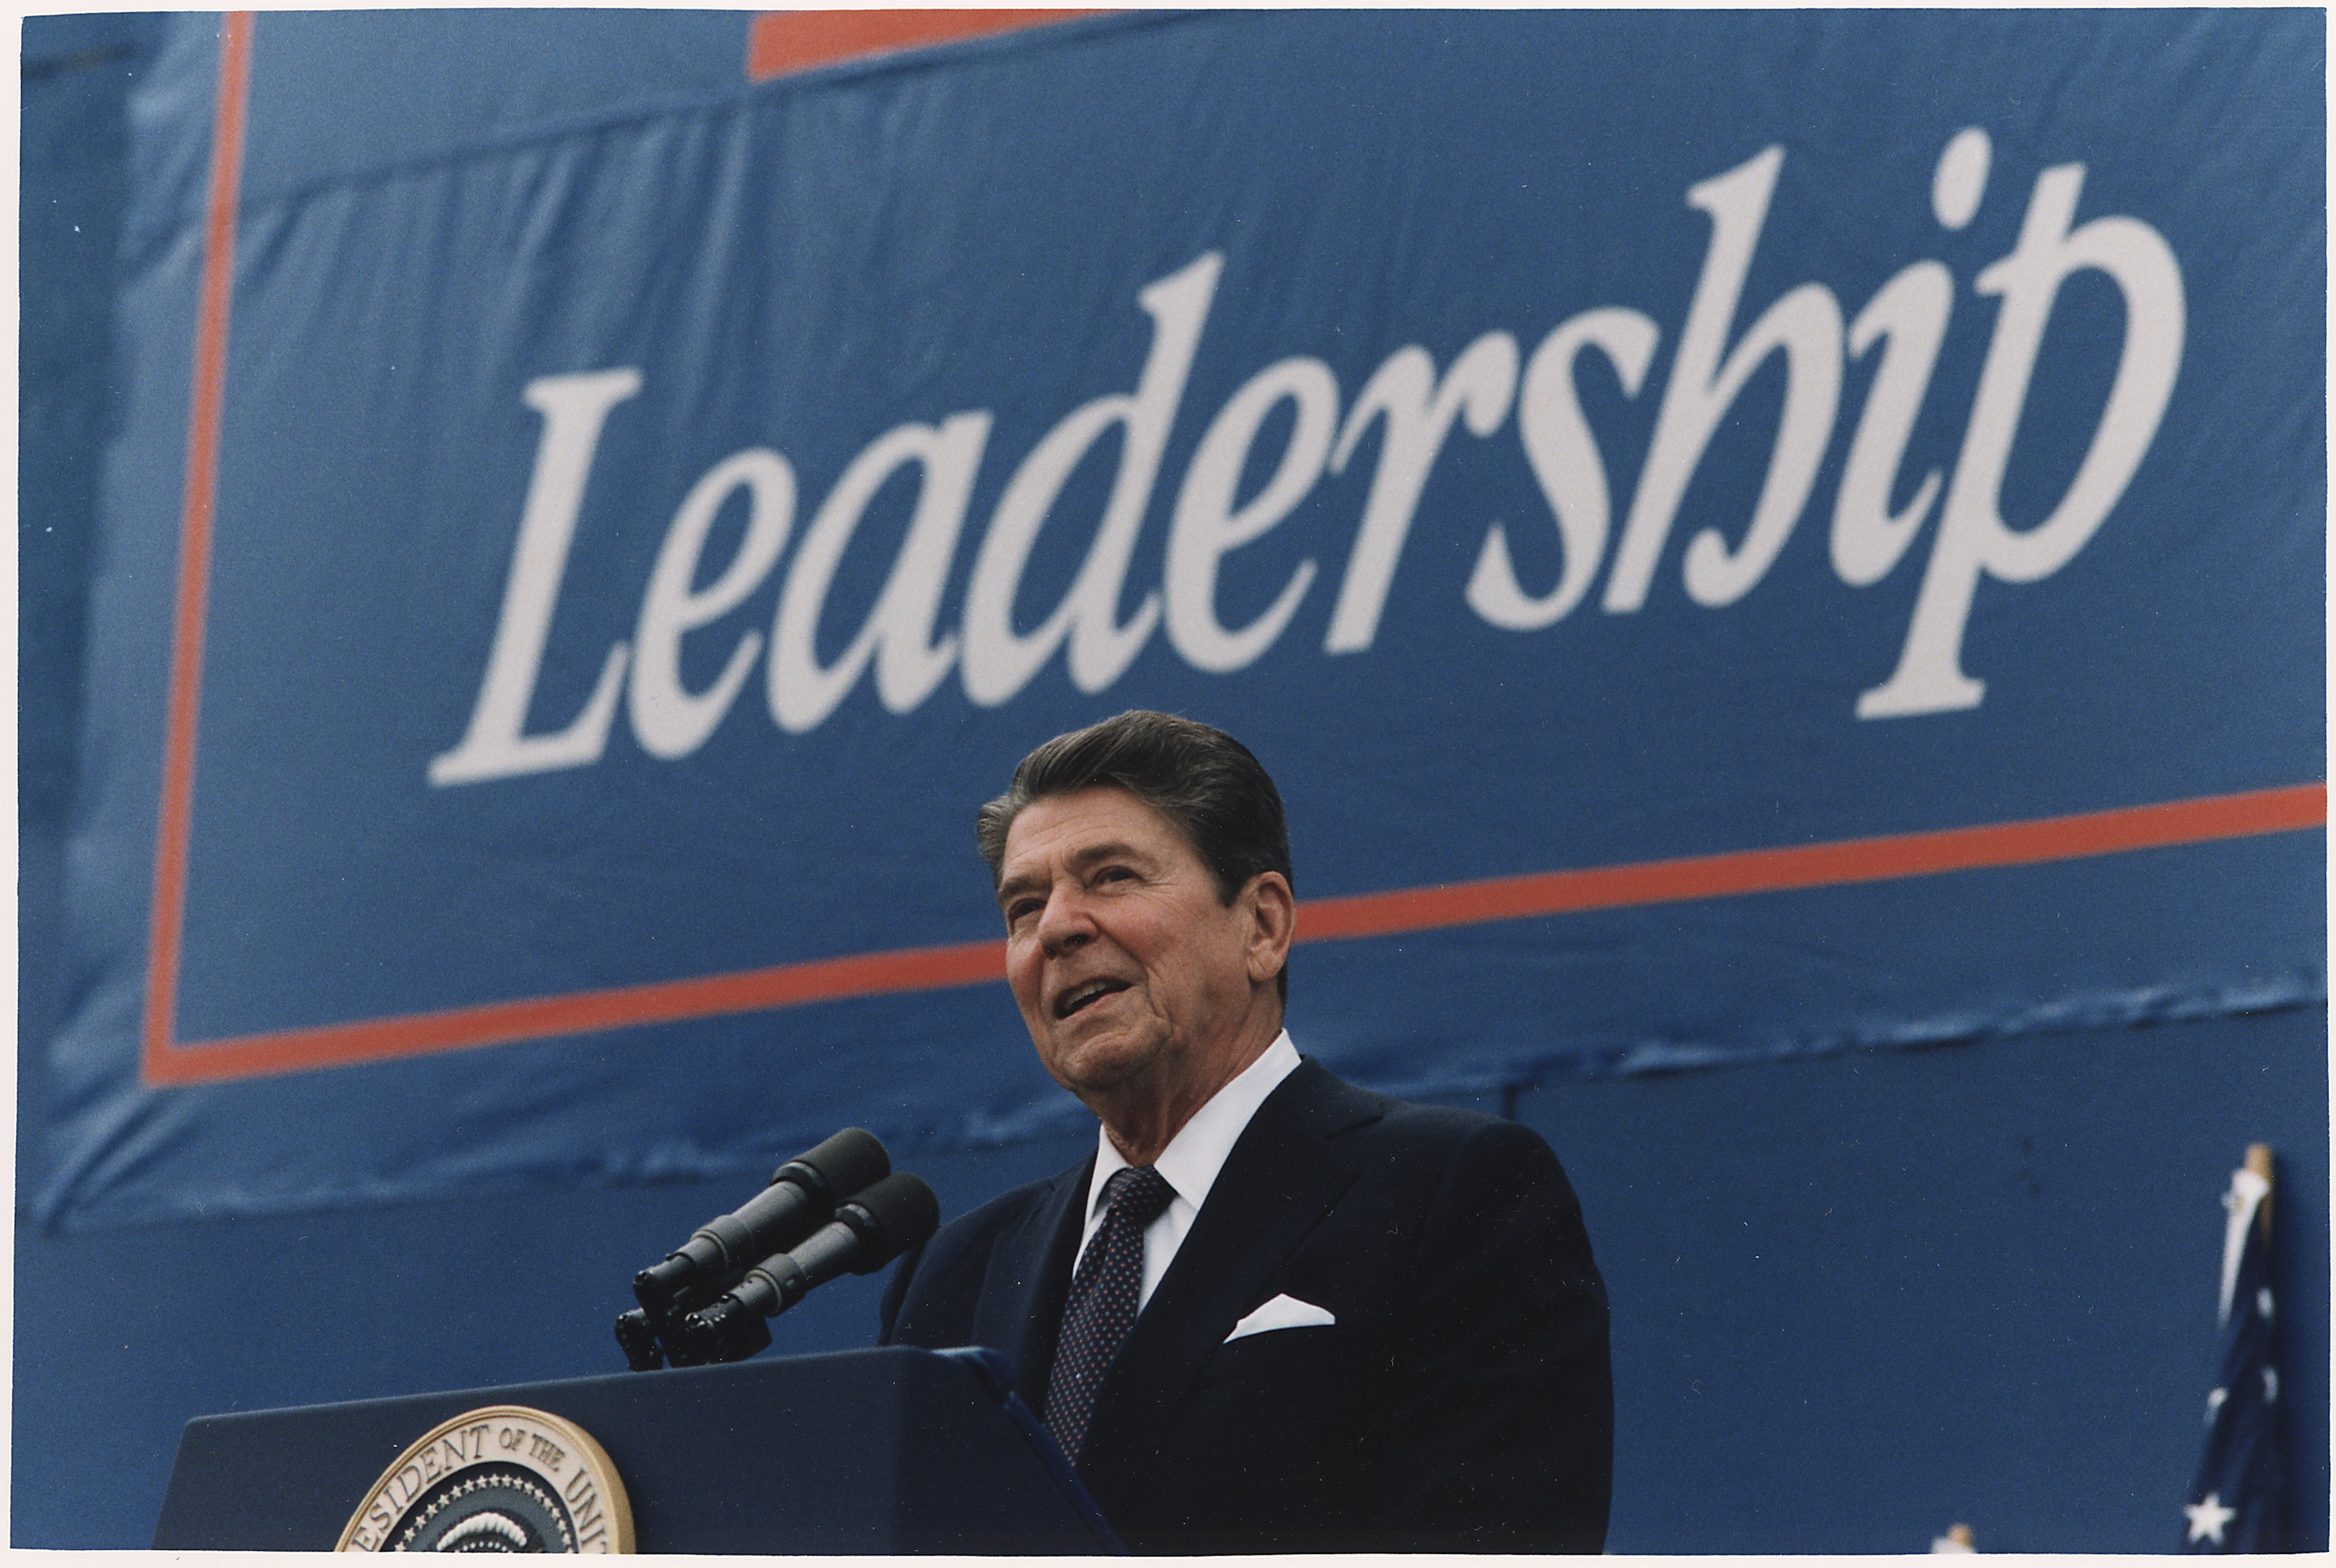 File:Photograph of President Reagan giving Campaign speech in Texas - NARA  - 198551.jpg - Wikimedia Commons